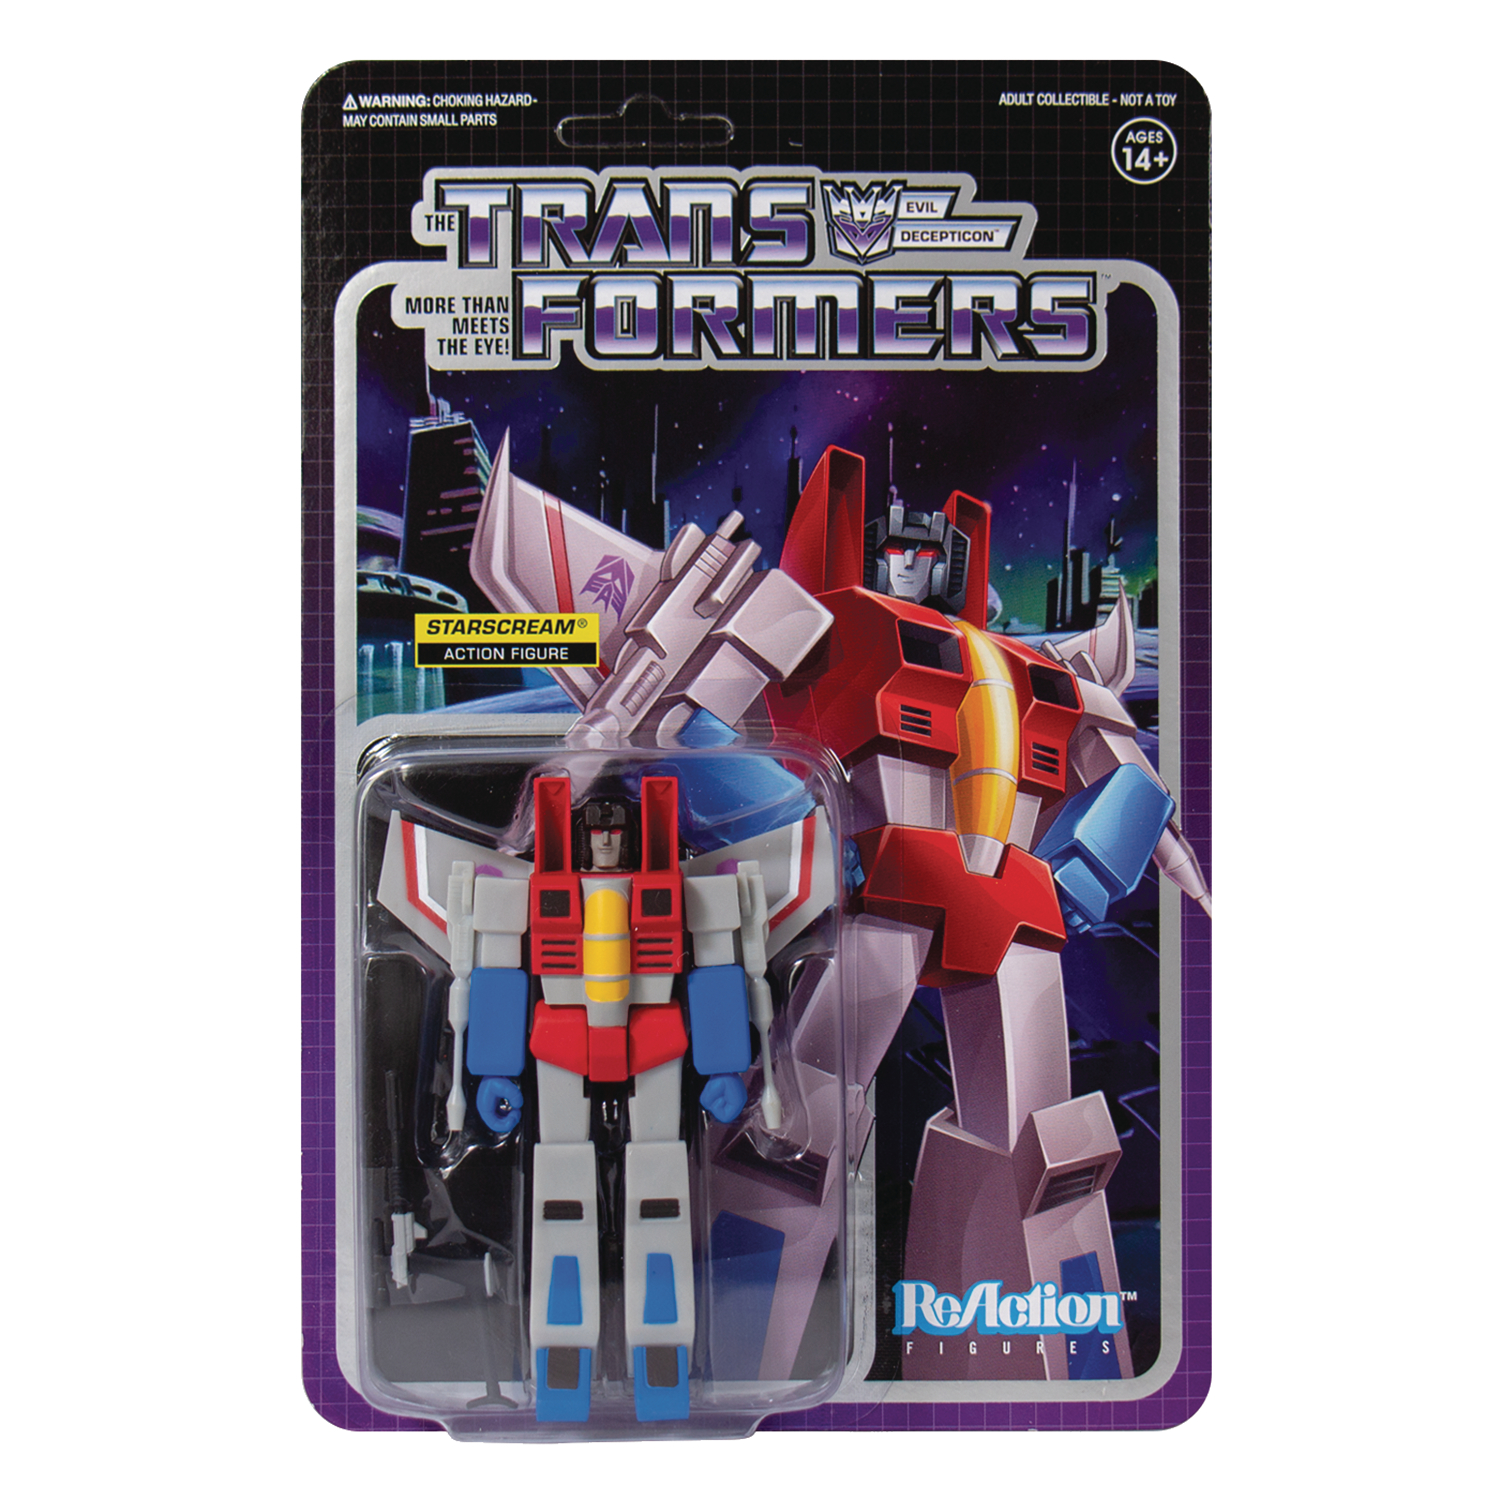 TRANSFORMERS STARSCREAM REACTION FIGURE